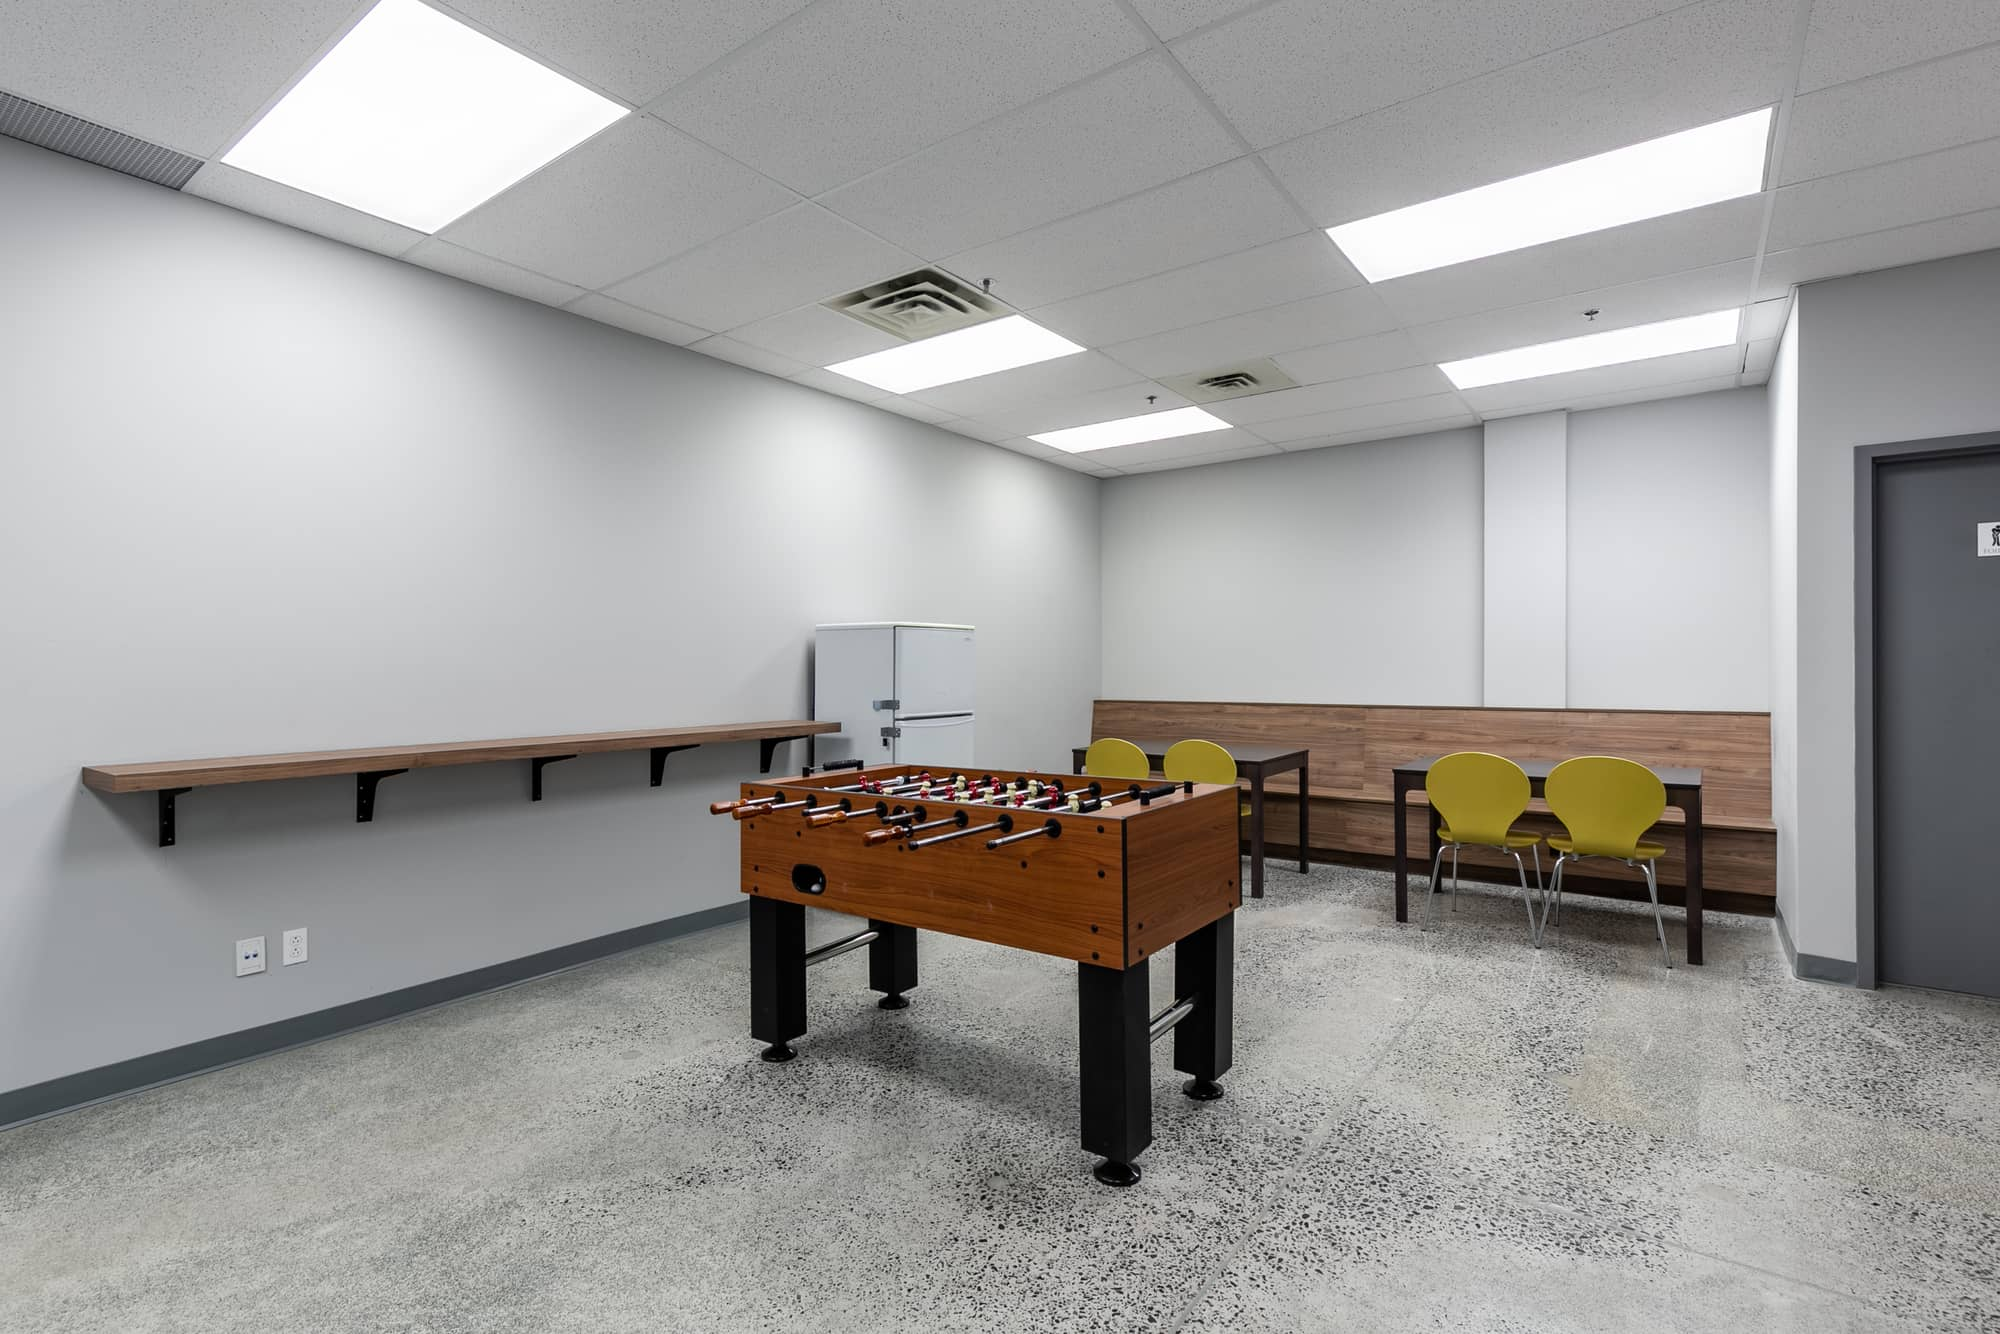 office break room with a baby foot table, refrigerator and chairs